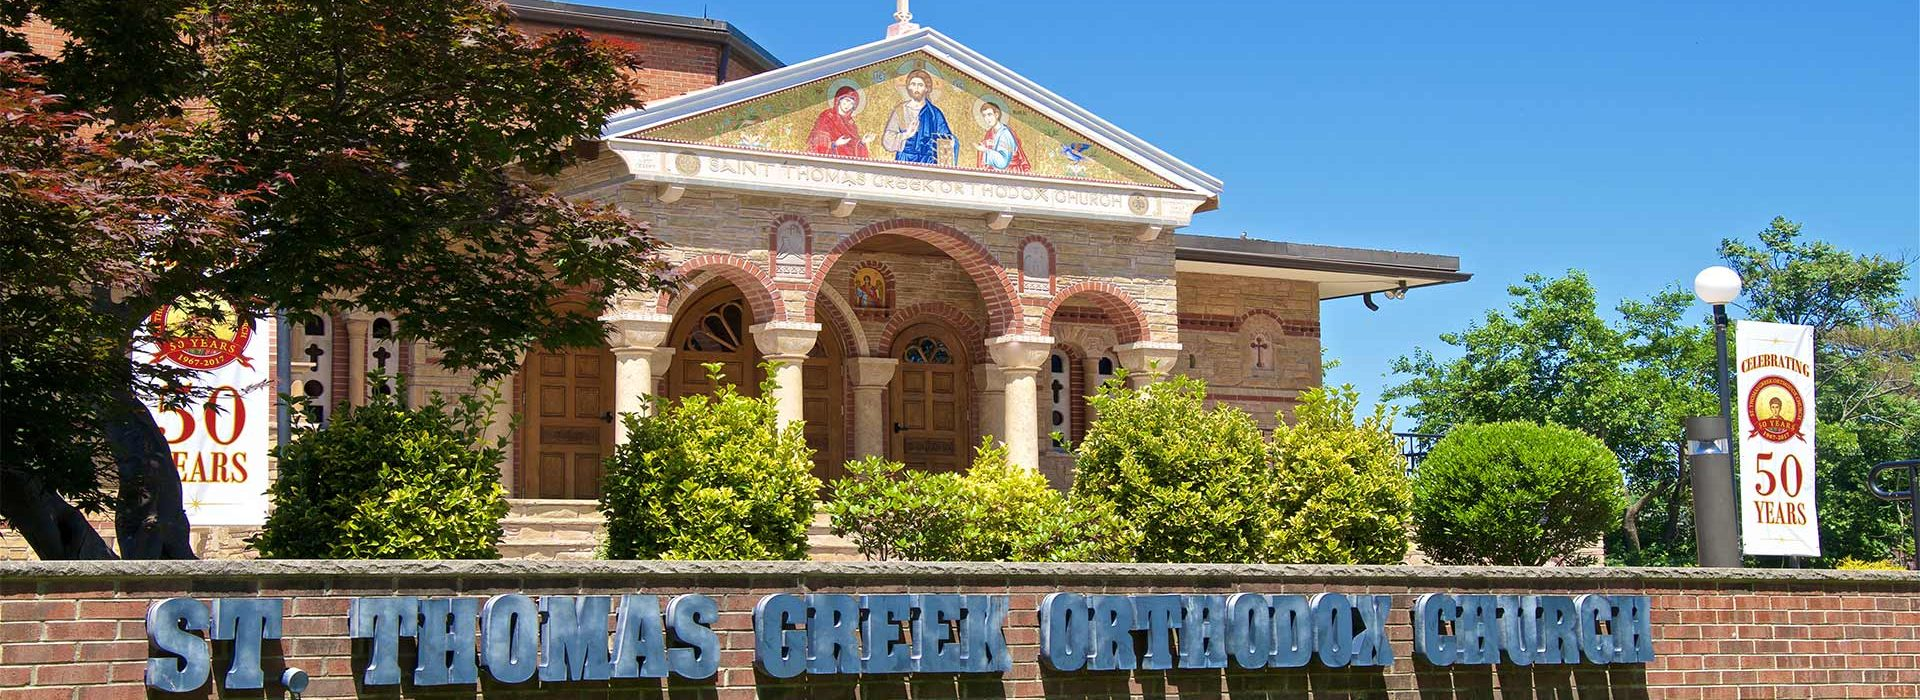 Saint Thomas Greek Orthodox Church